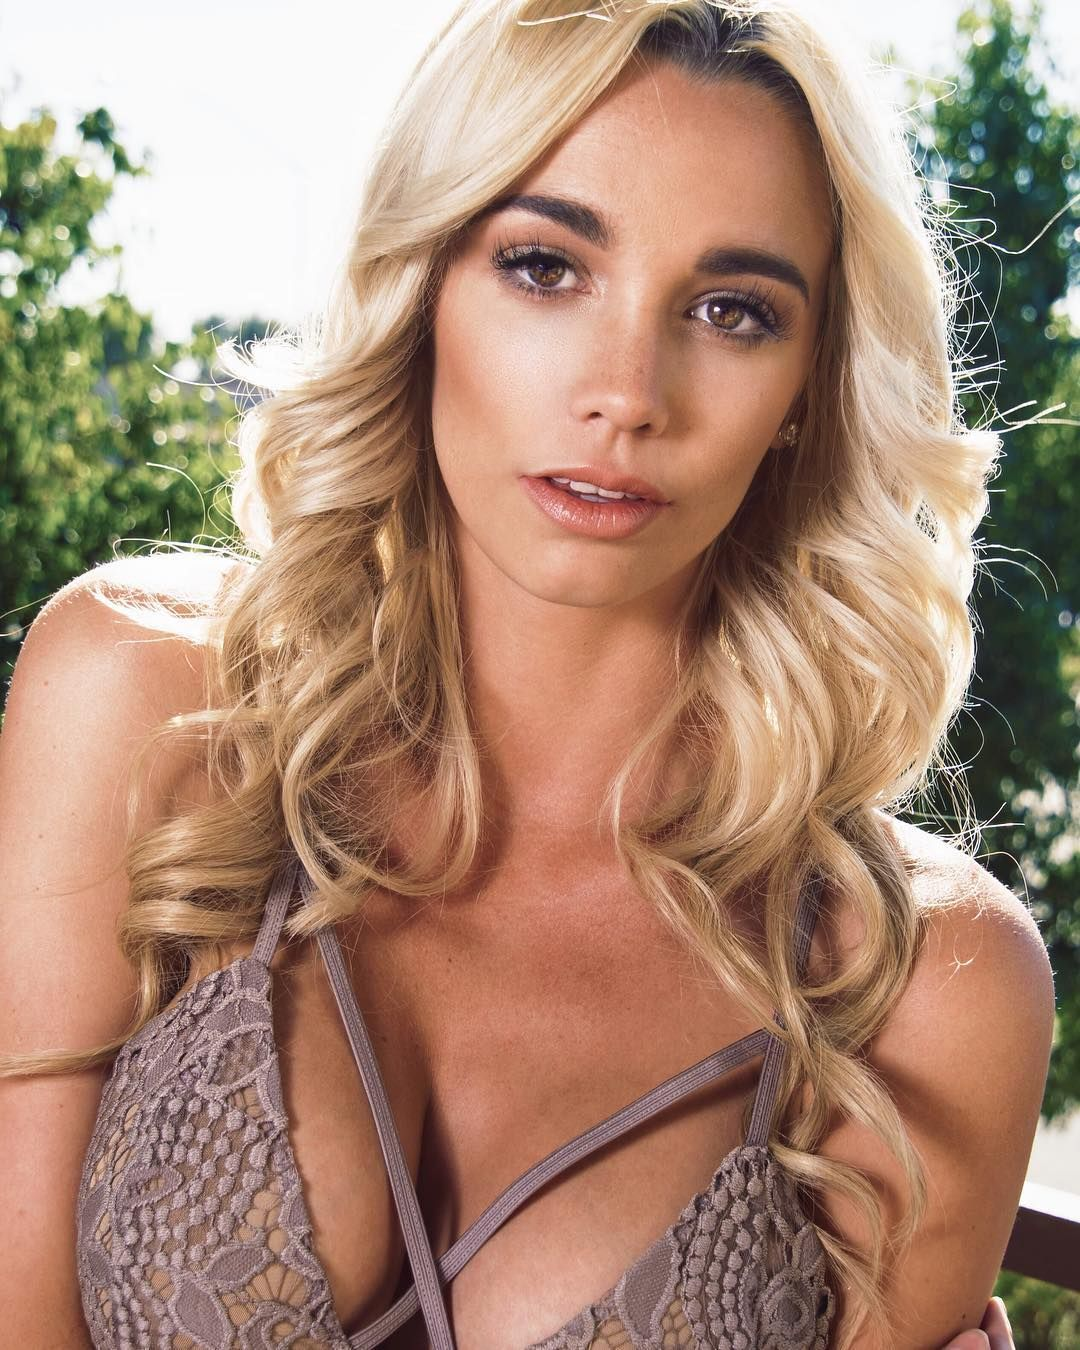 Celebrites Caitlin Arnett nudes (12 foto and video), Topless, Fappening, Twitter, underwear 2019